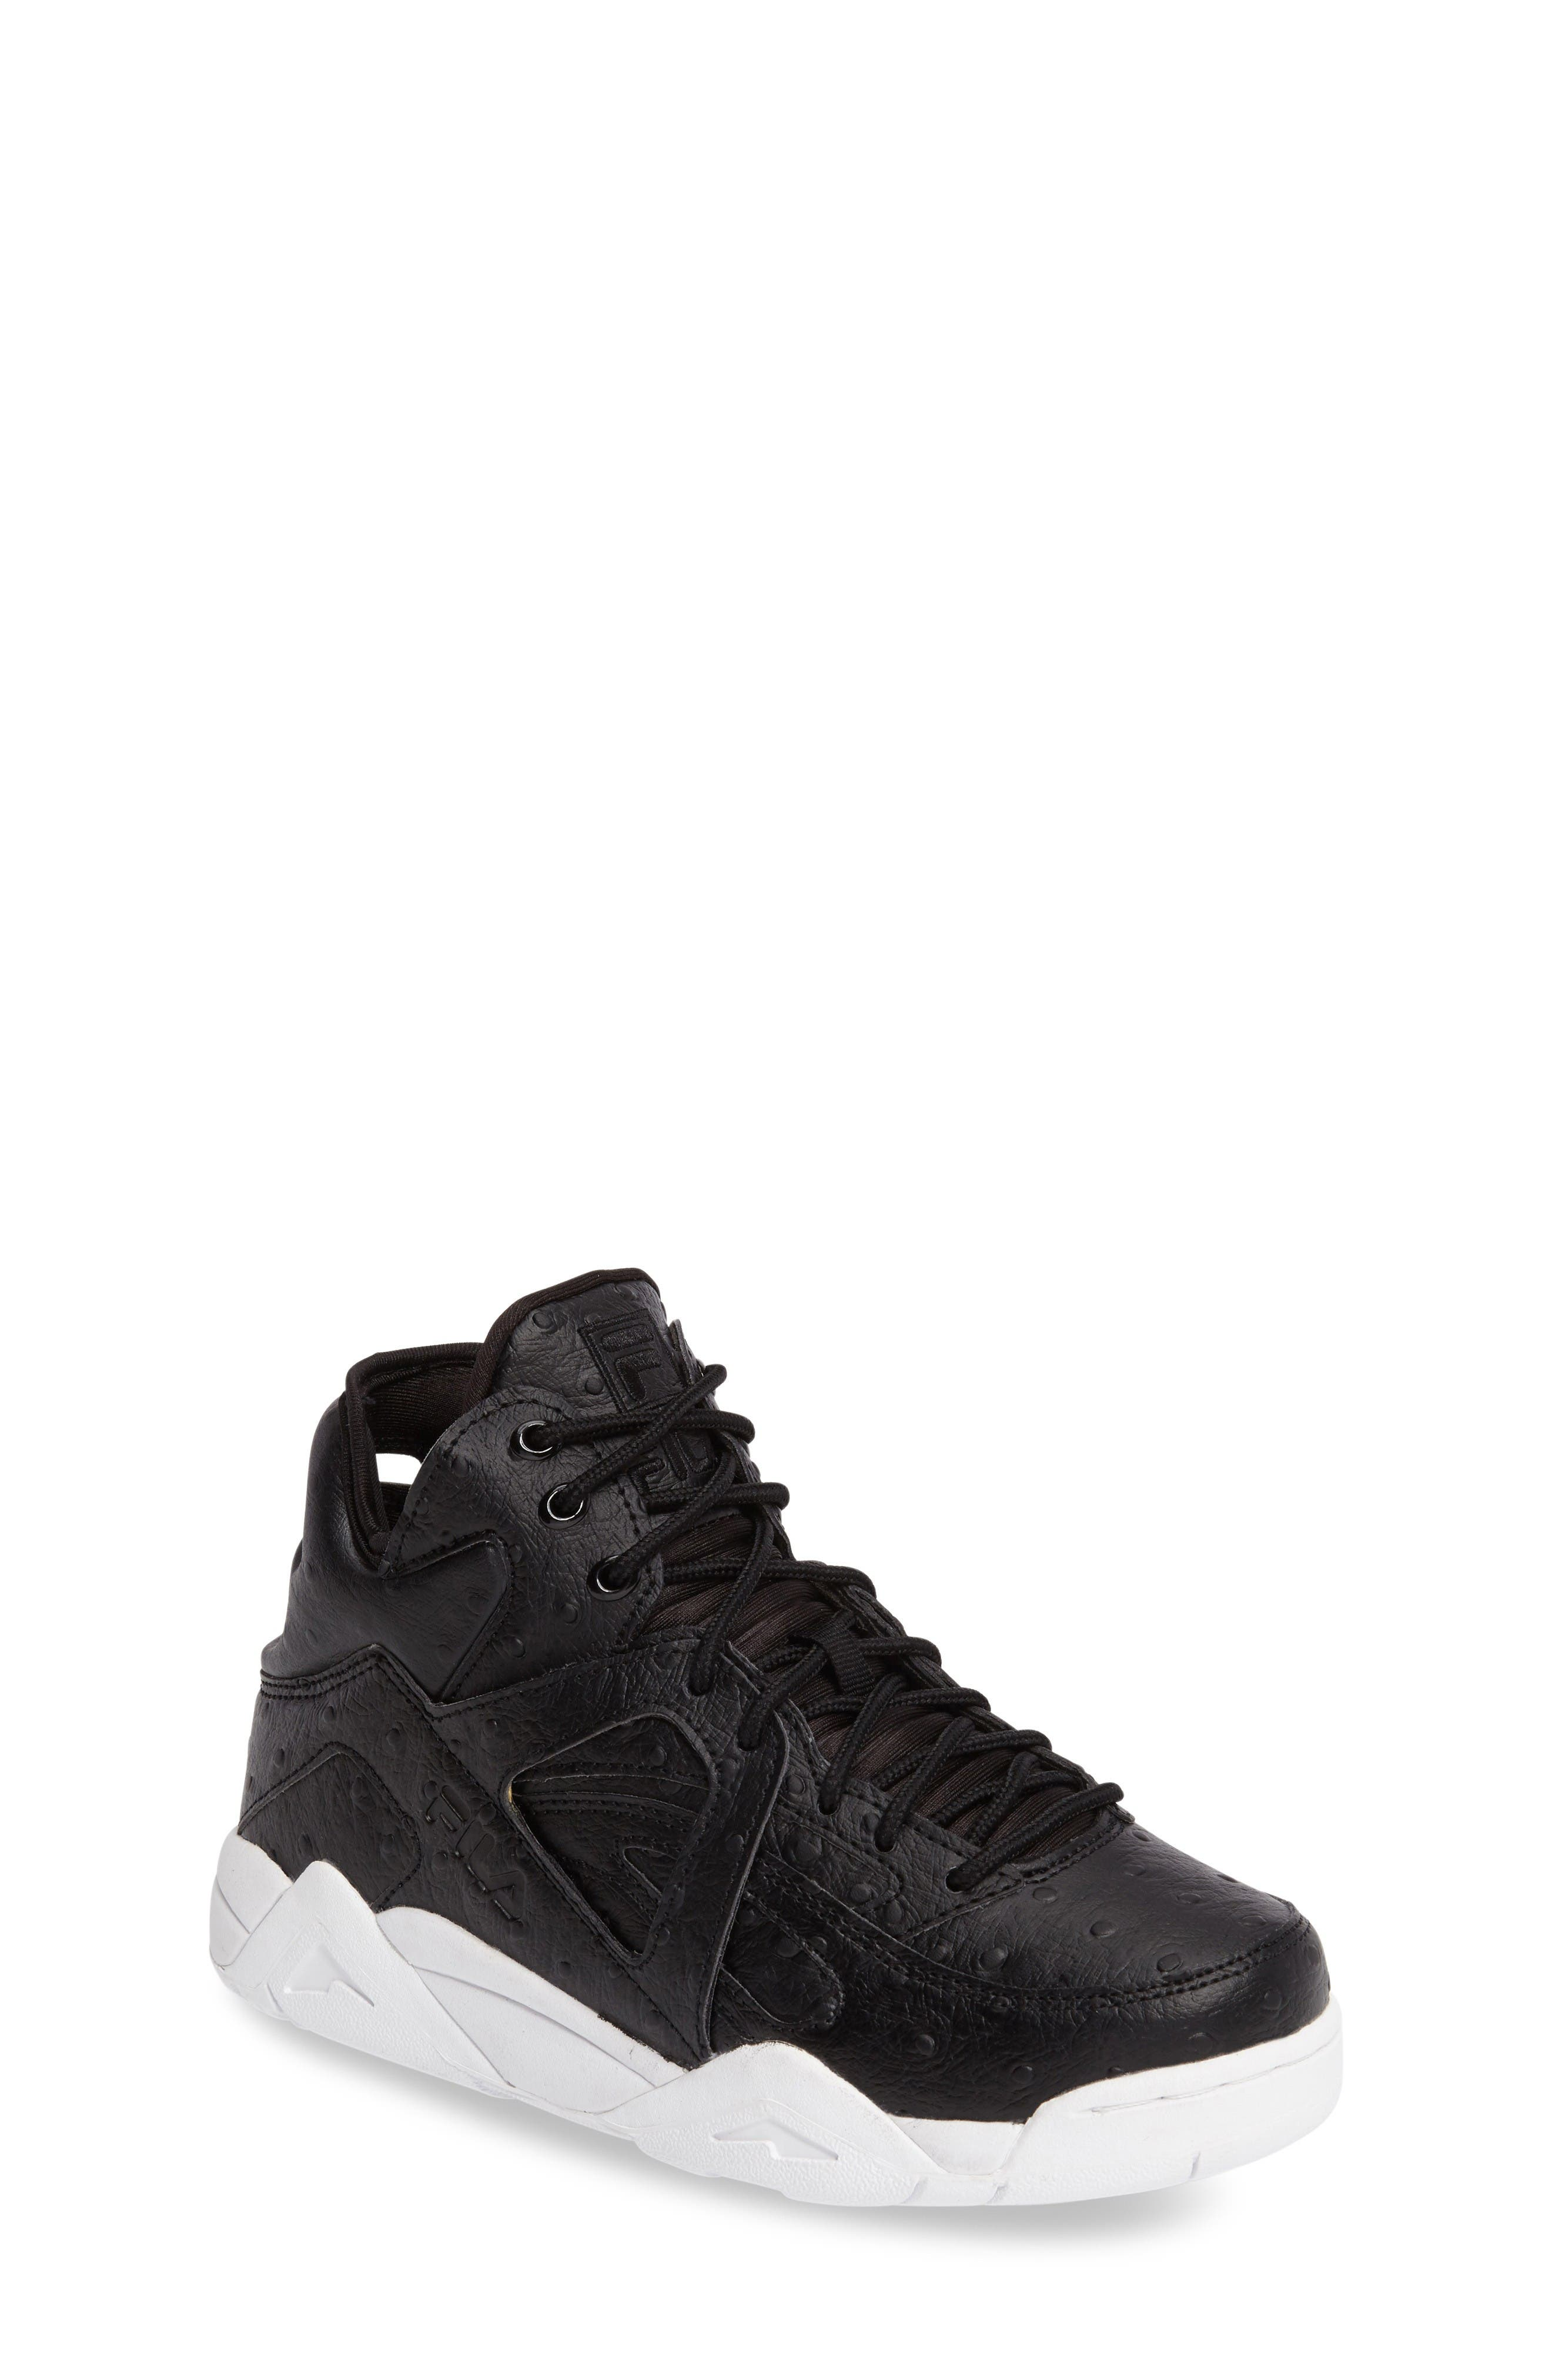 The Cage Ostrich Sneaker,                             Main thumbnail 1, color,                             Black